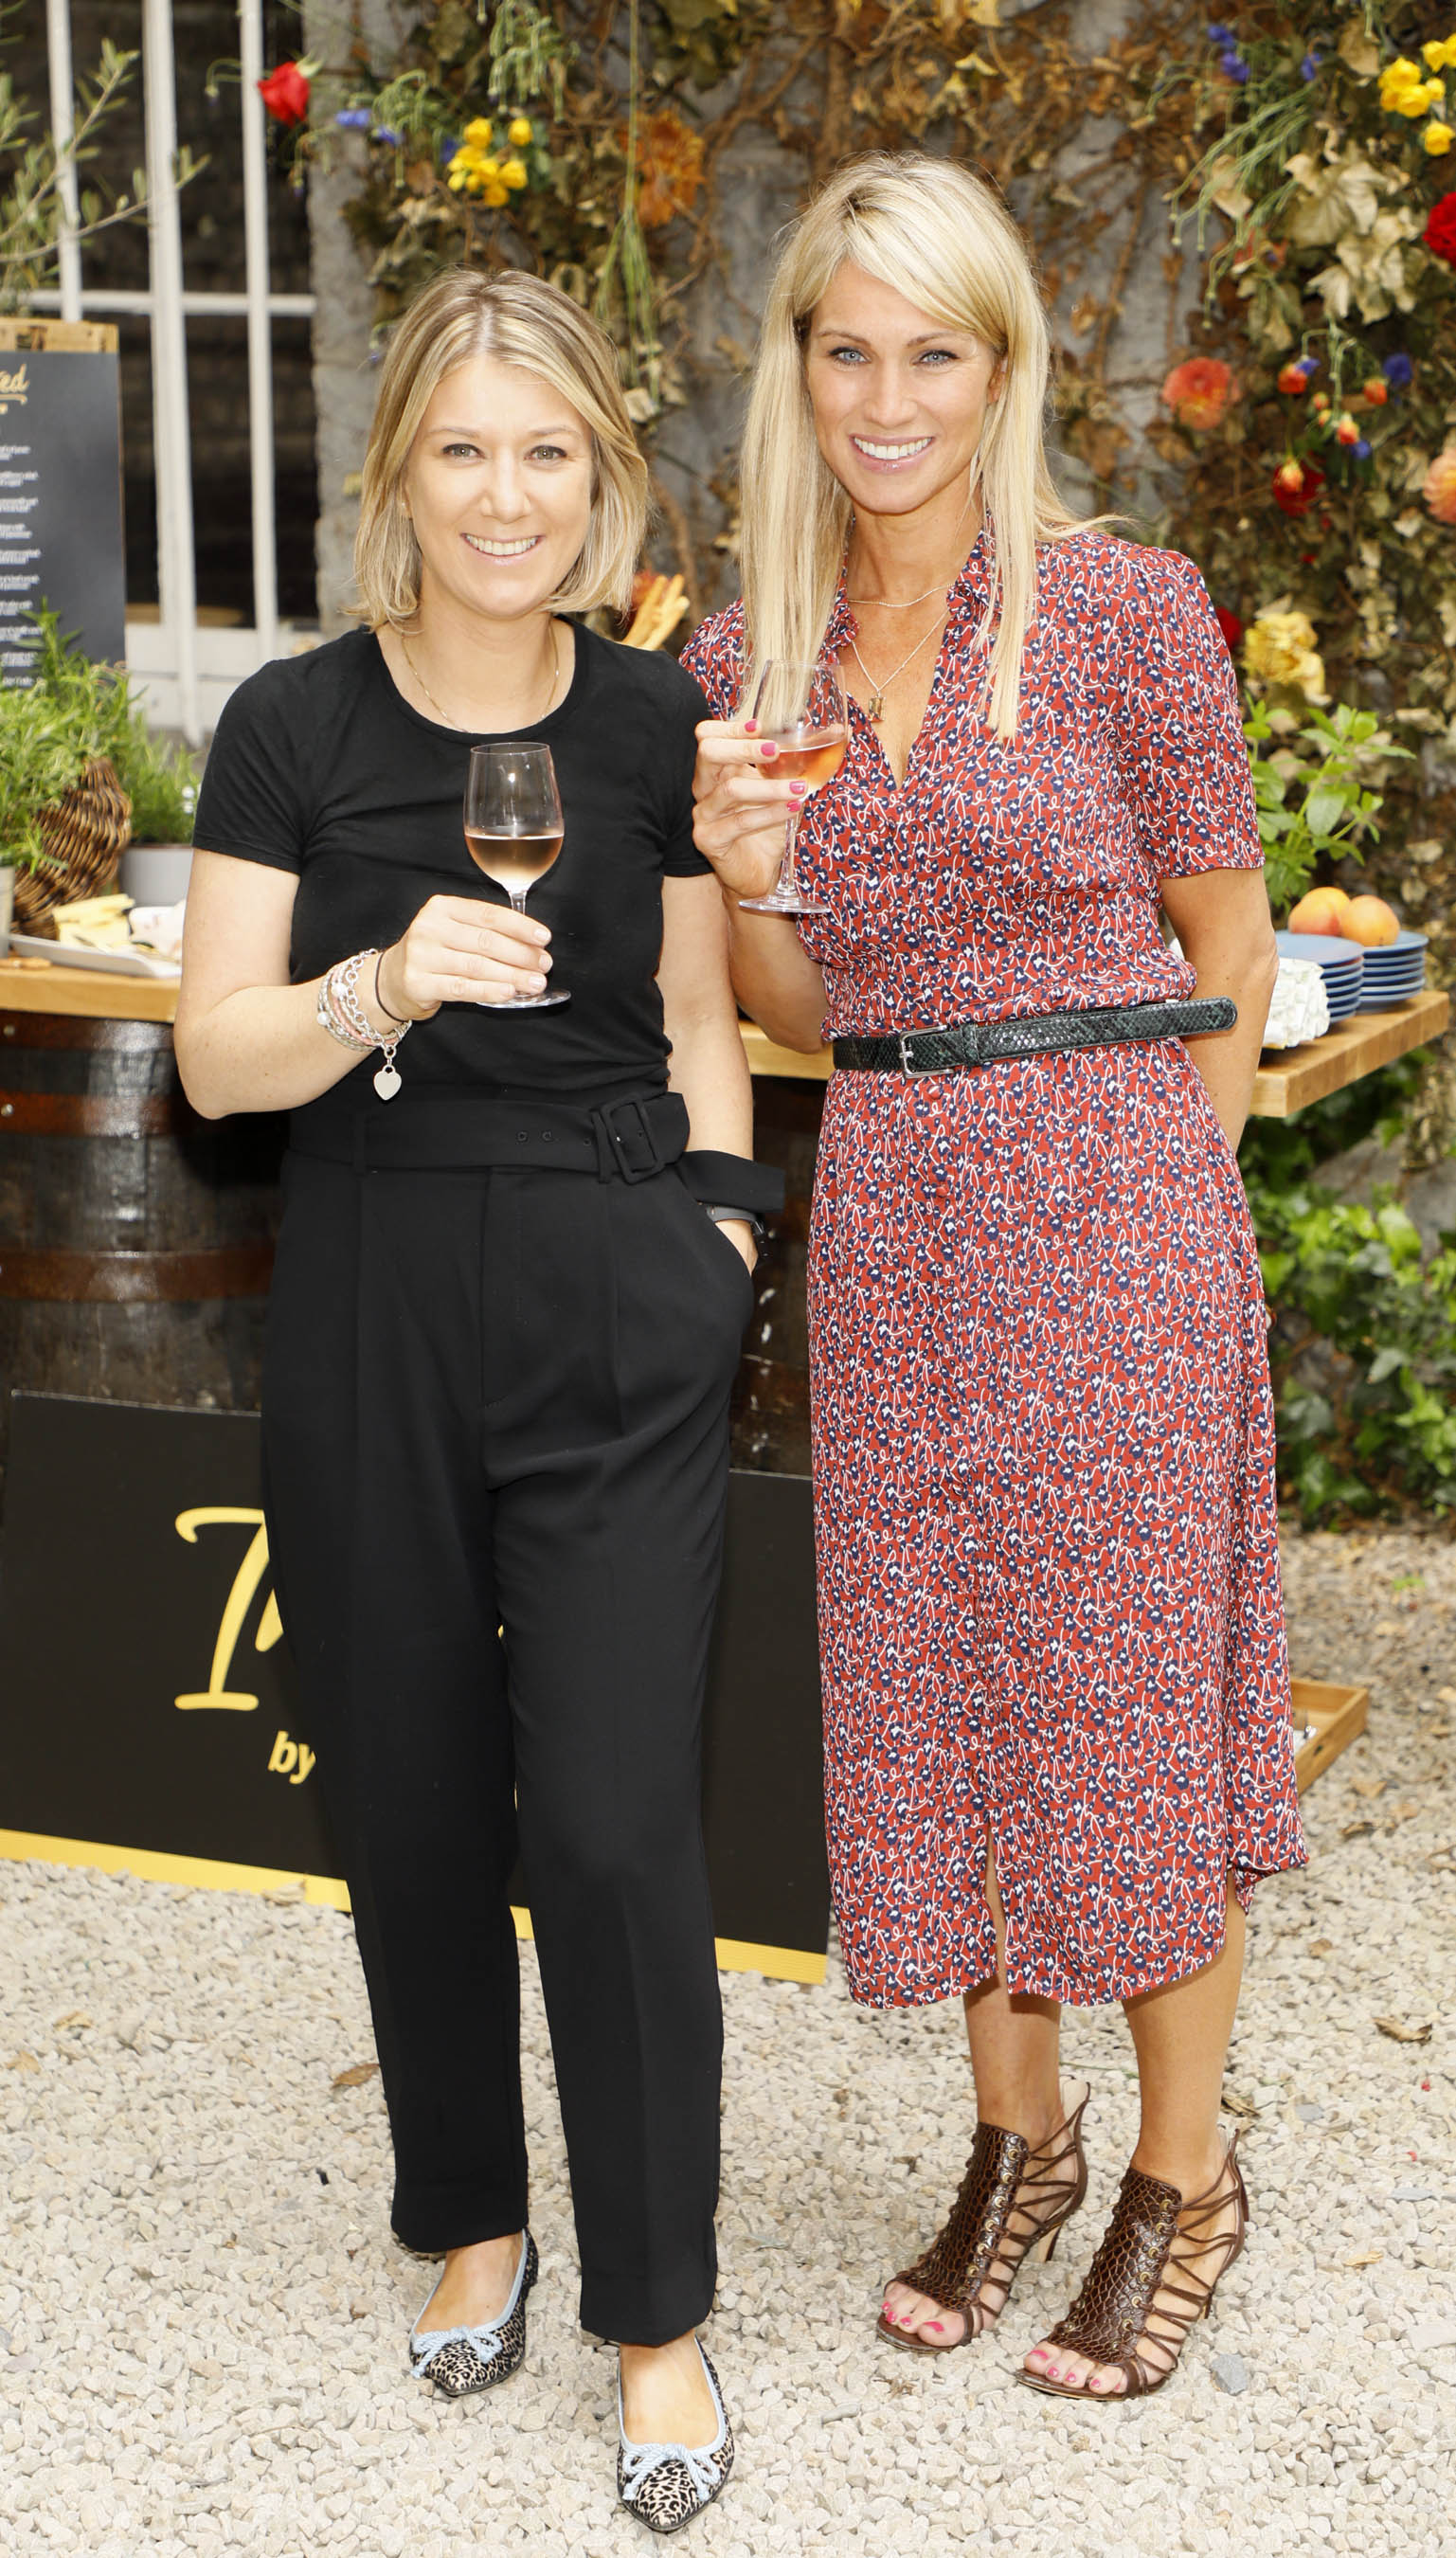 Niamh Skally and Deirdre O'Leary at the Centra 'Wines We Love' event in Dublin. Photo: Kieran Harnett